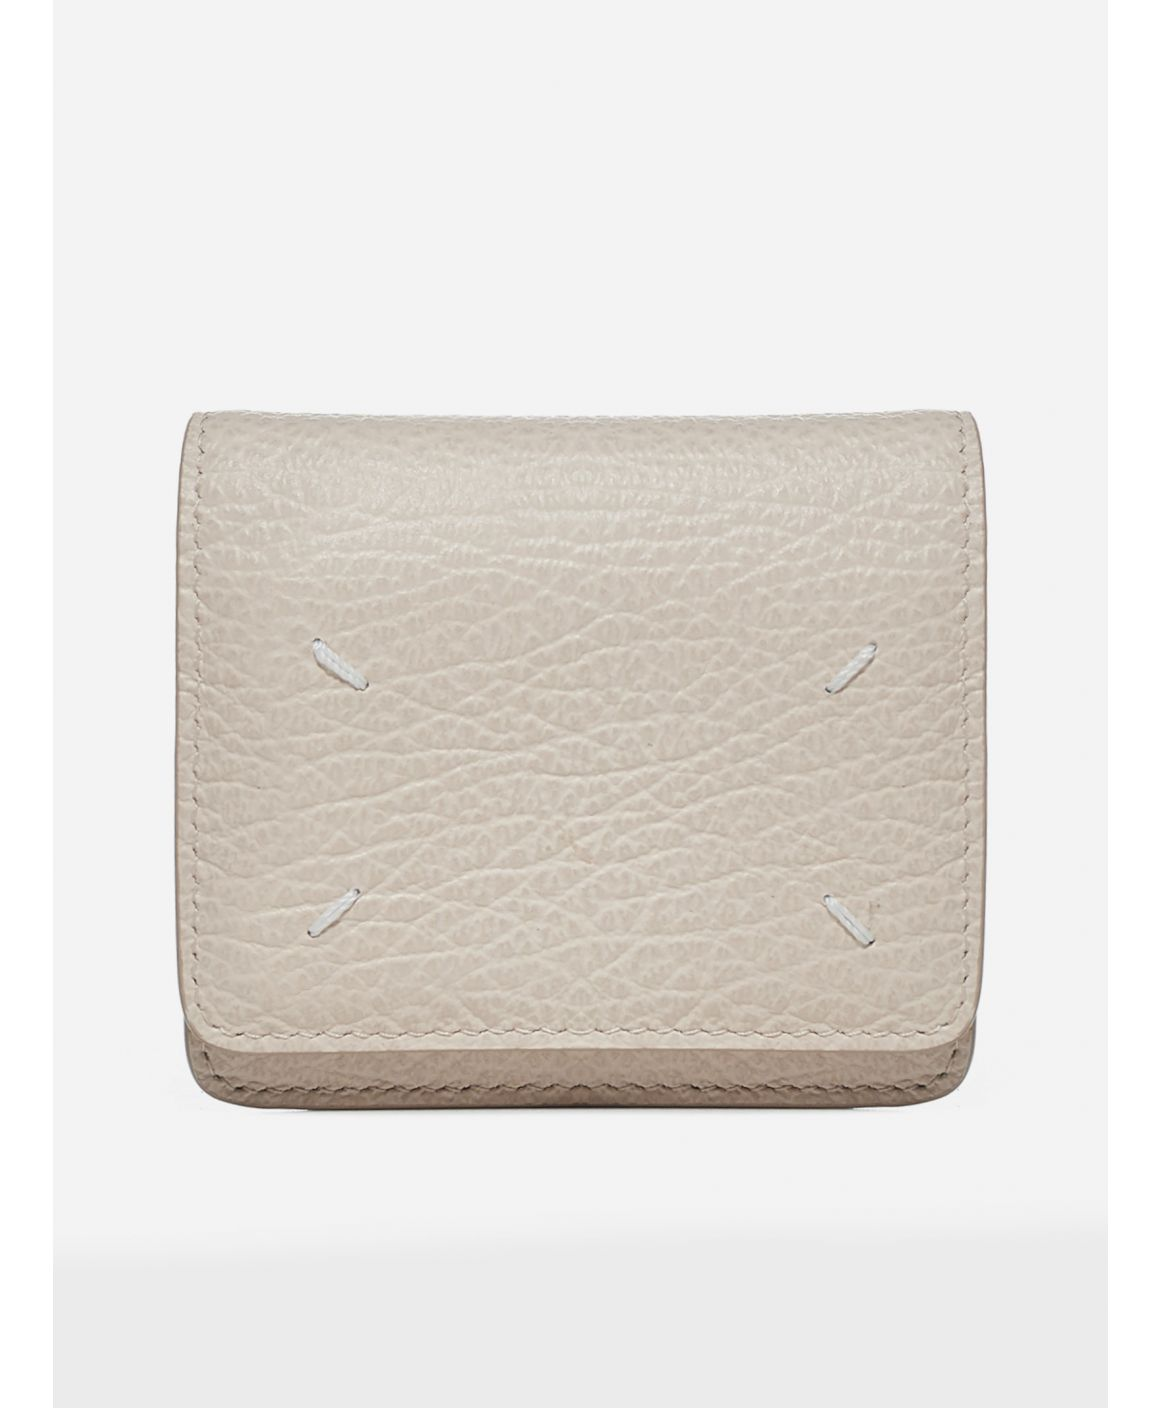 Logo leather wallet micro clutch bag